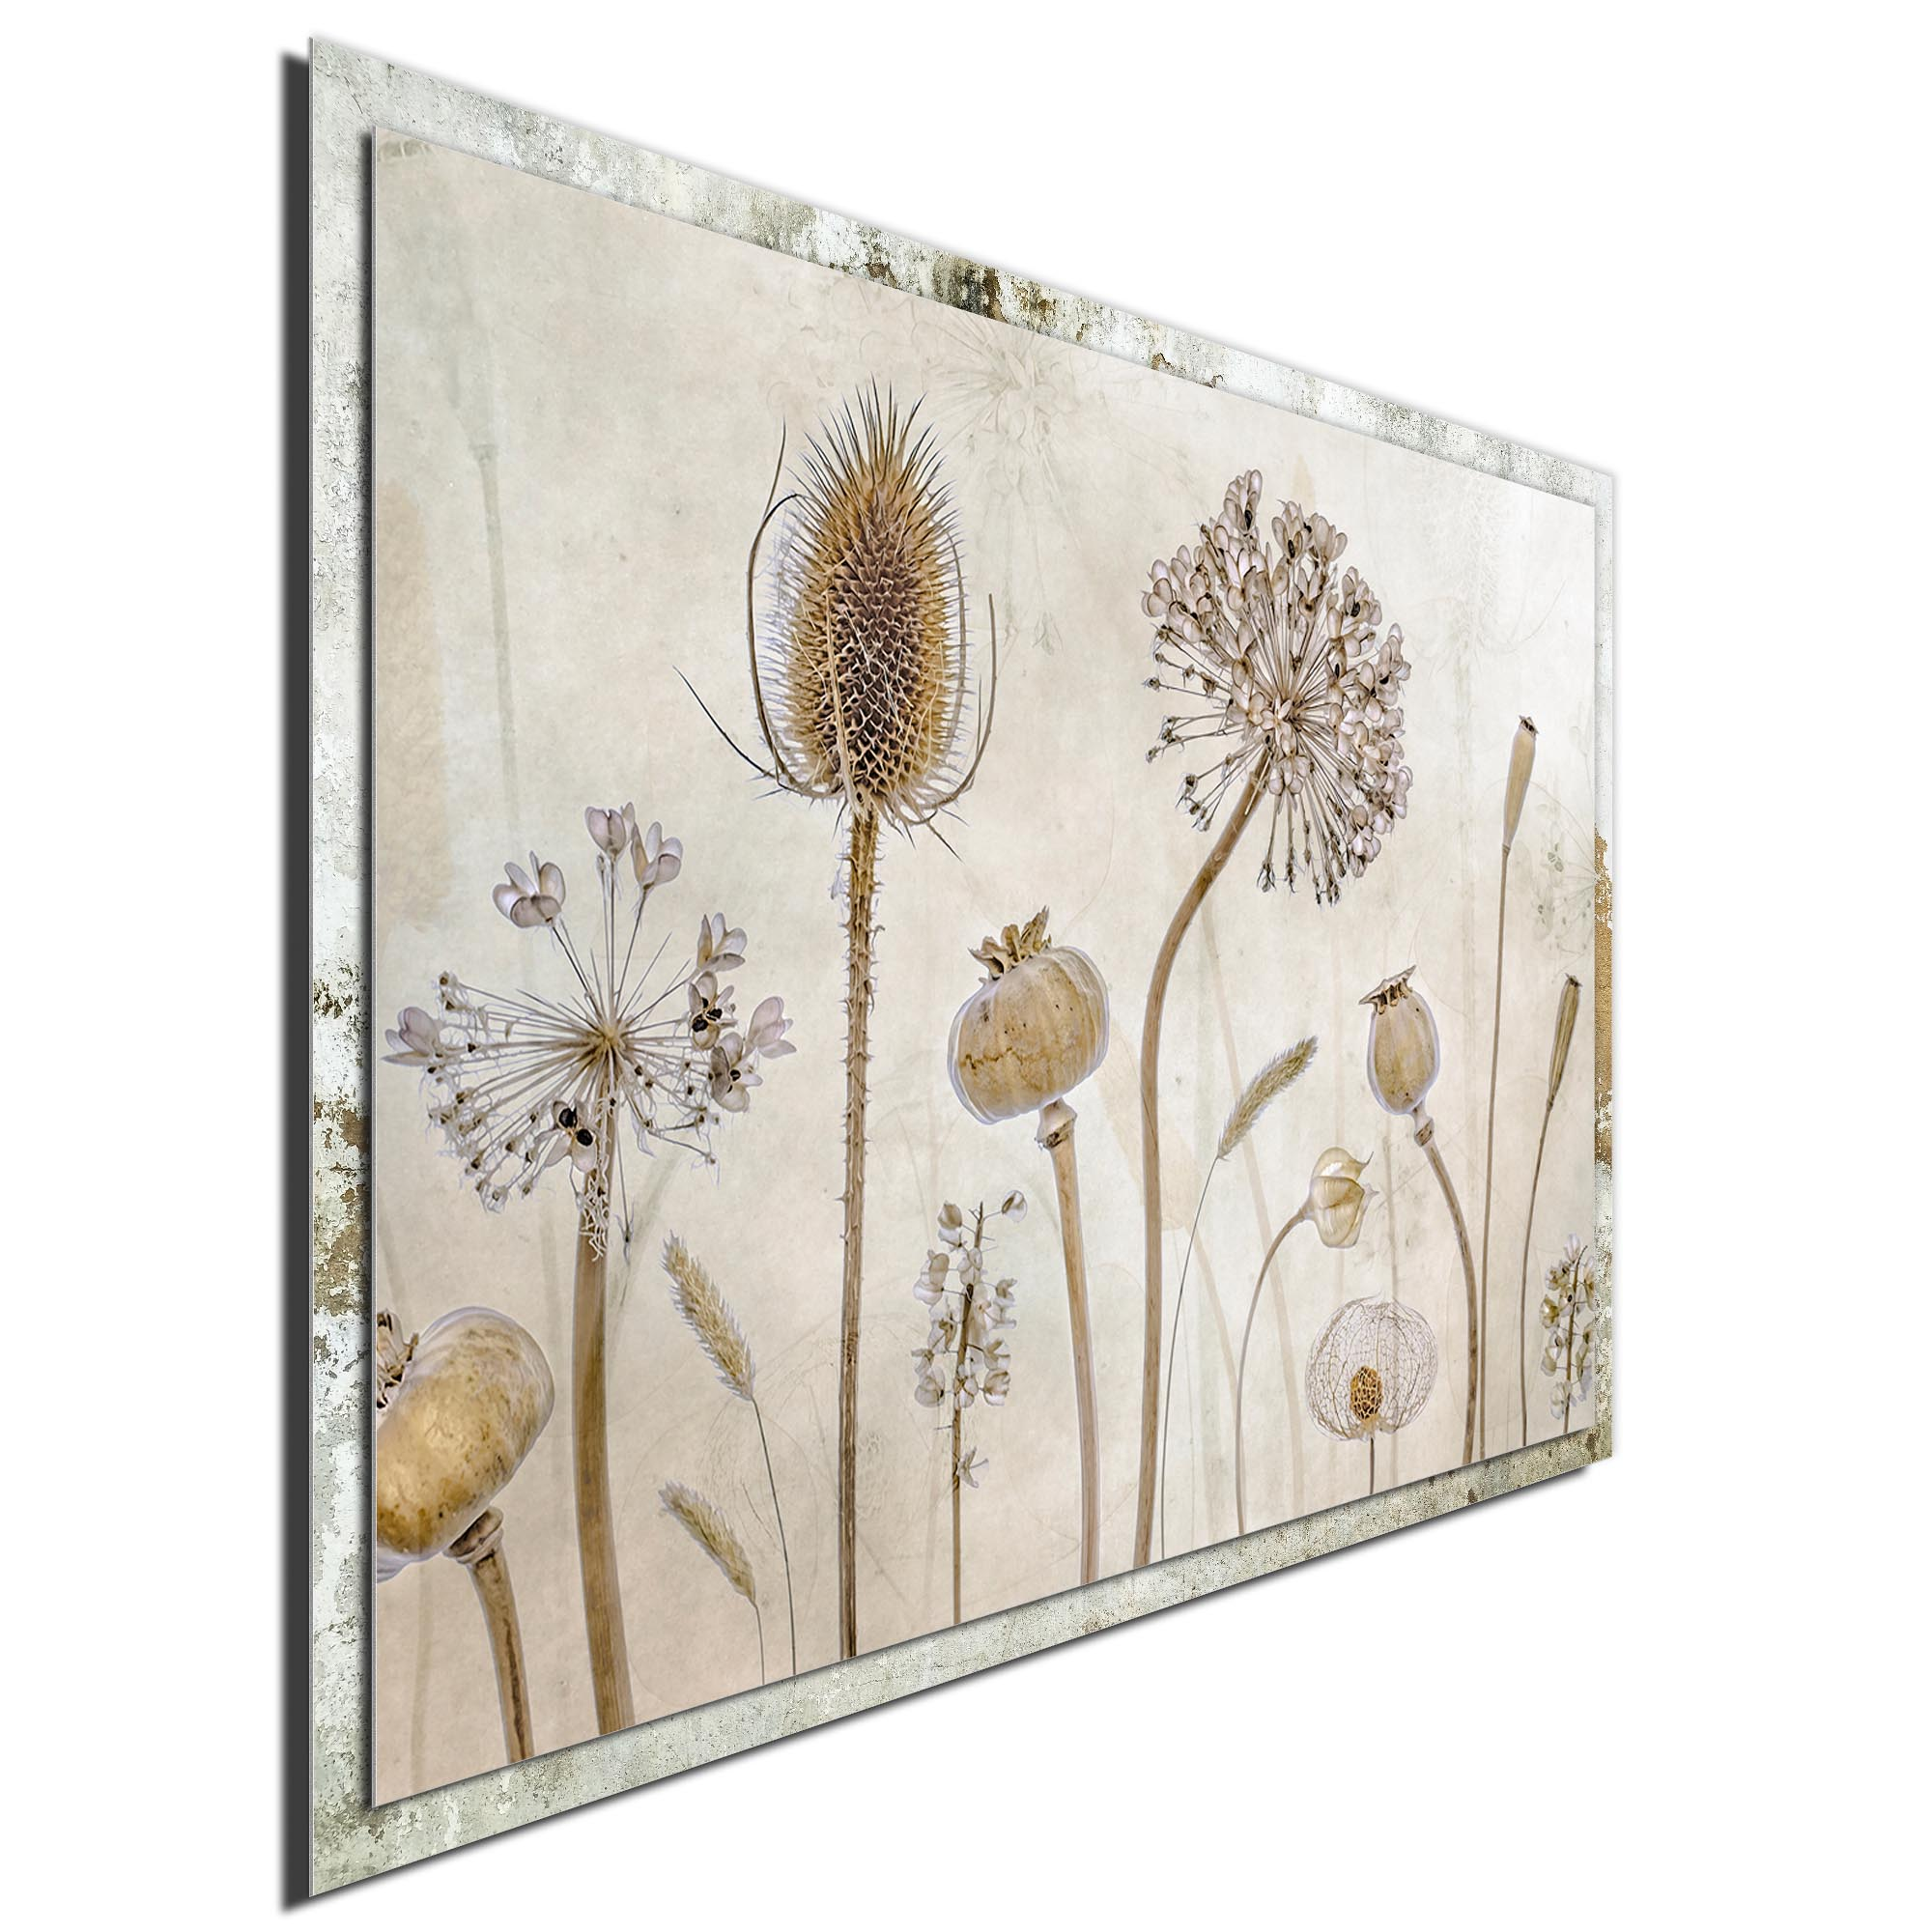 Growing Old by Mandy Disher - Modern Farmhouse Floral on Metal - Image 2